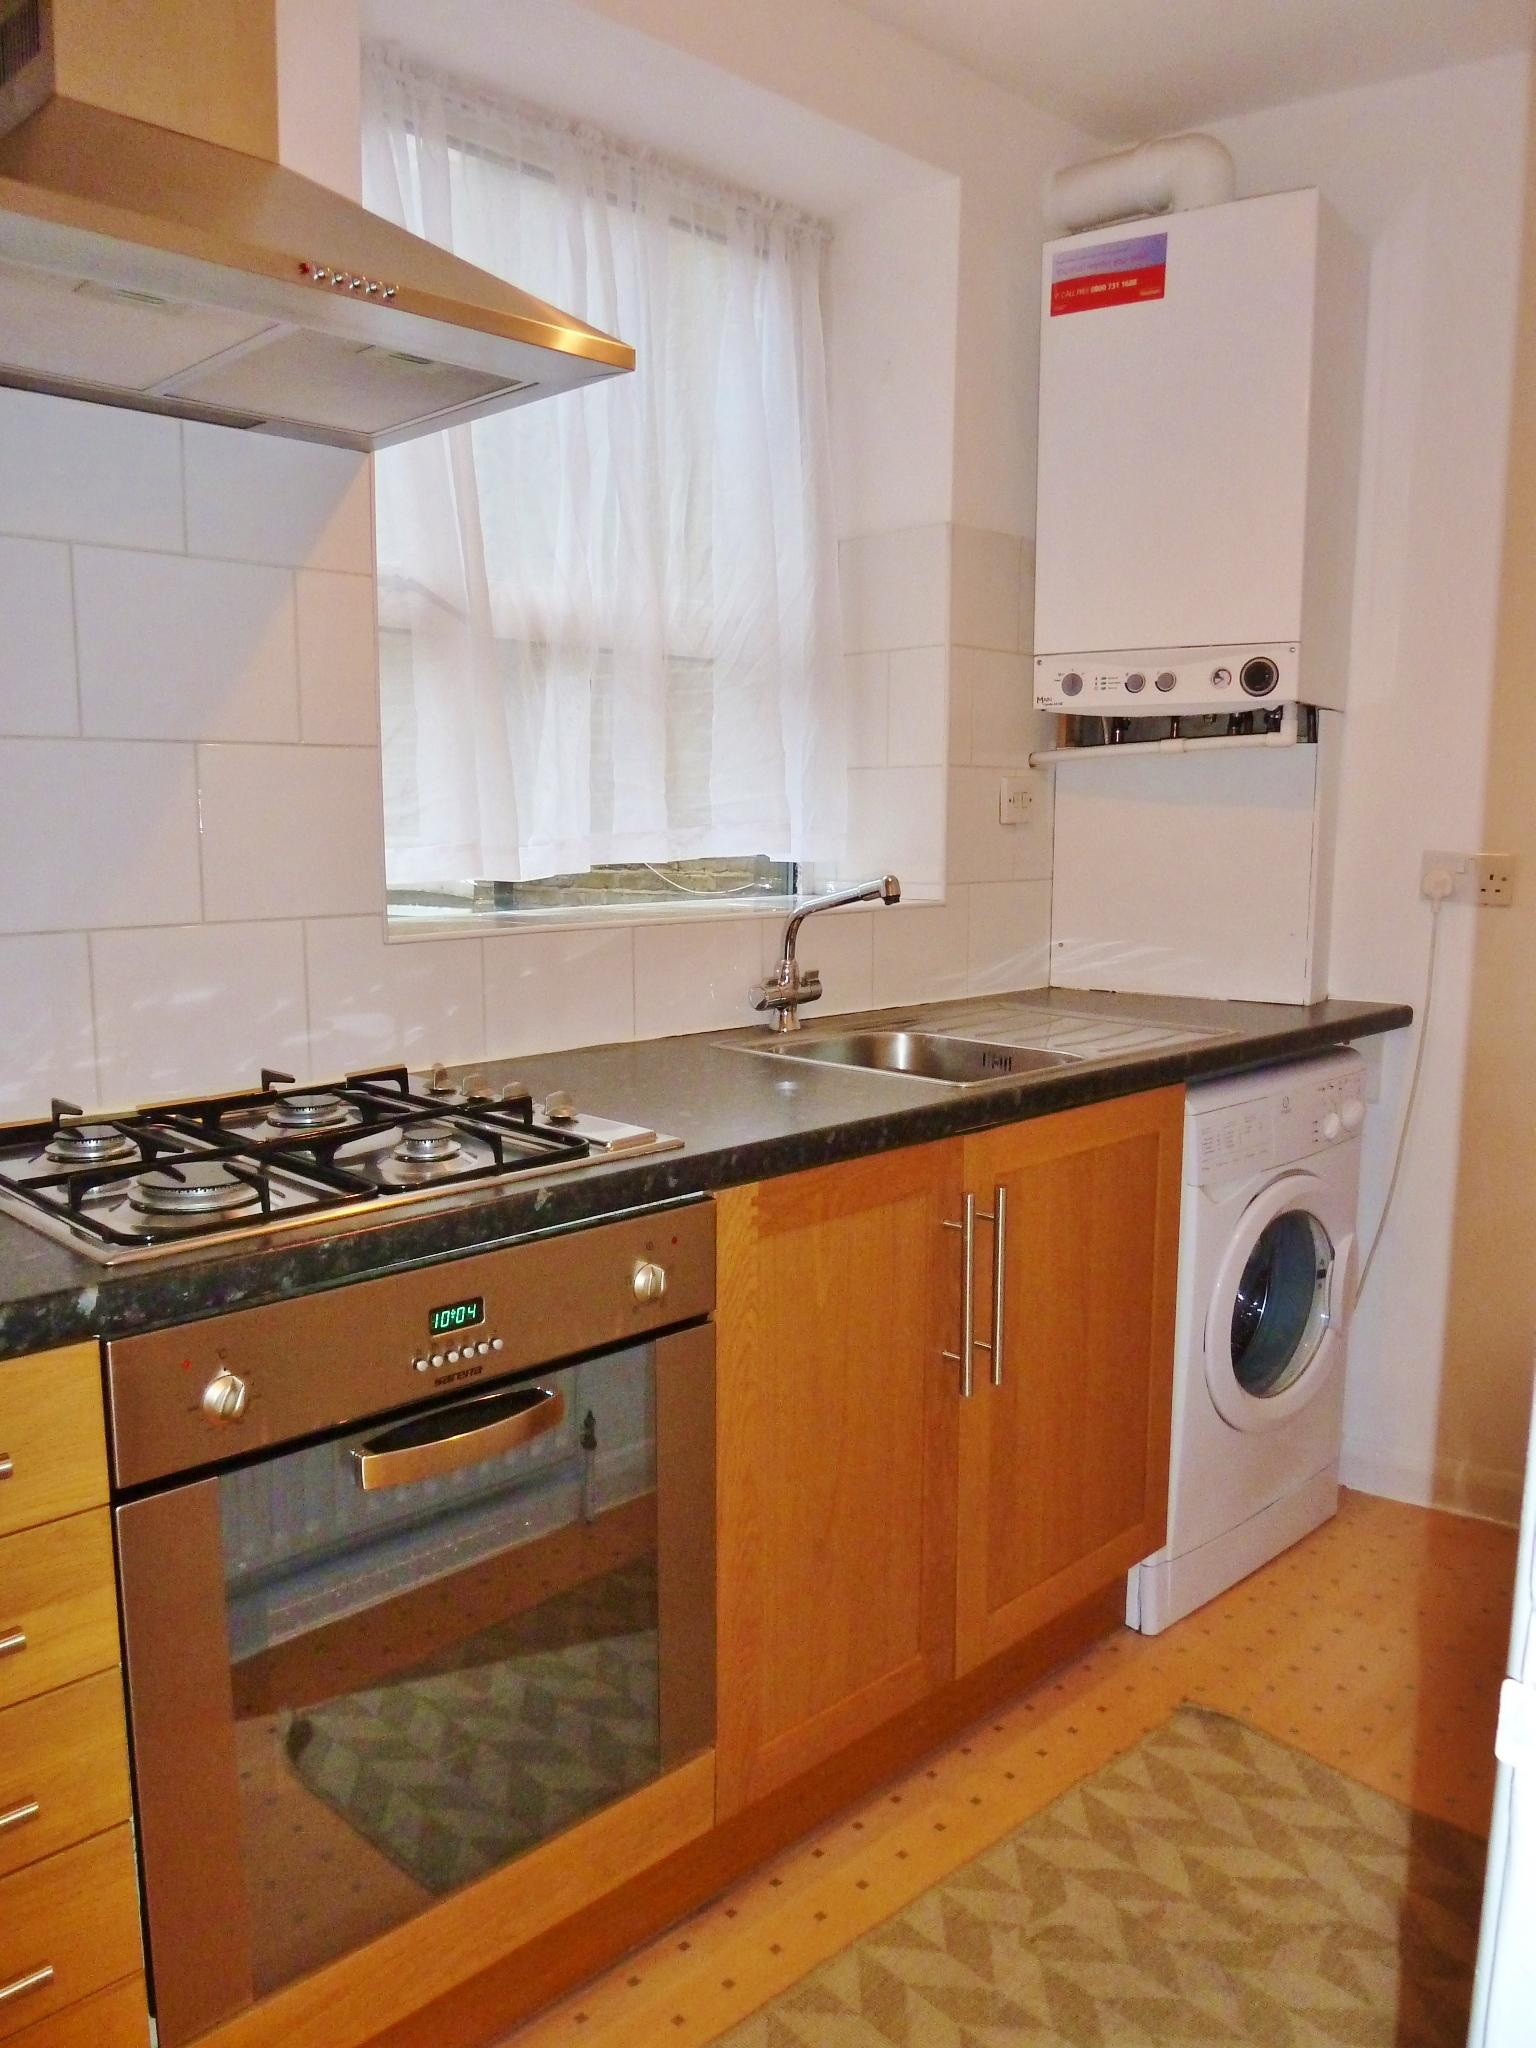 1 bedroom flat flat/apartment To Let in Brent - Seperate Fully Fitted Kitchen